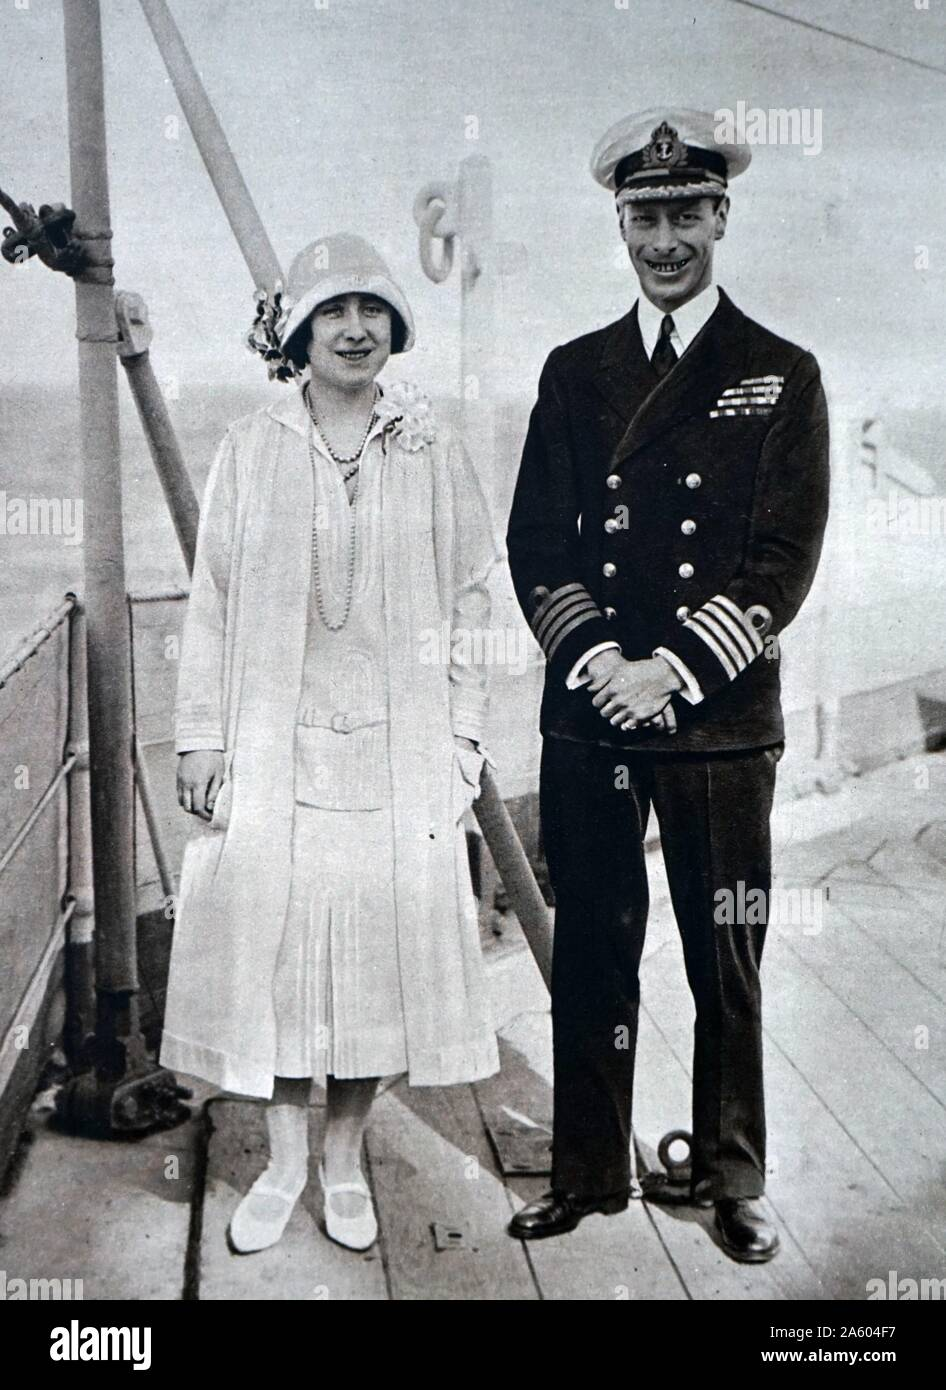 Photograph of Prince Albert Frederick Arthur George (1895-1952) and Lady Elizabeth (1900-2002) aboard the H.M.S. Renown. Dated 20th Century Stock Photo